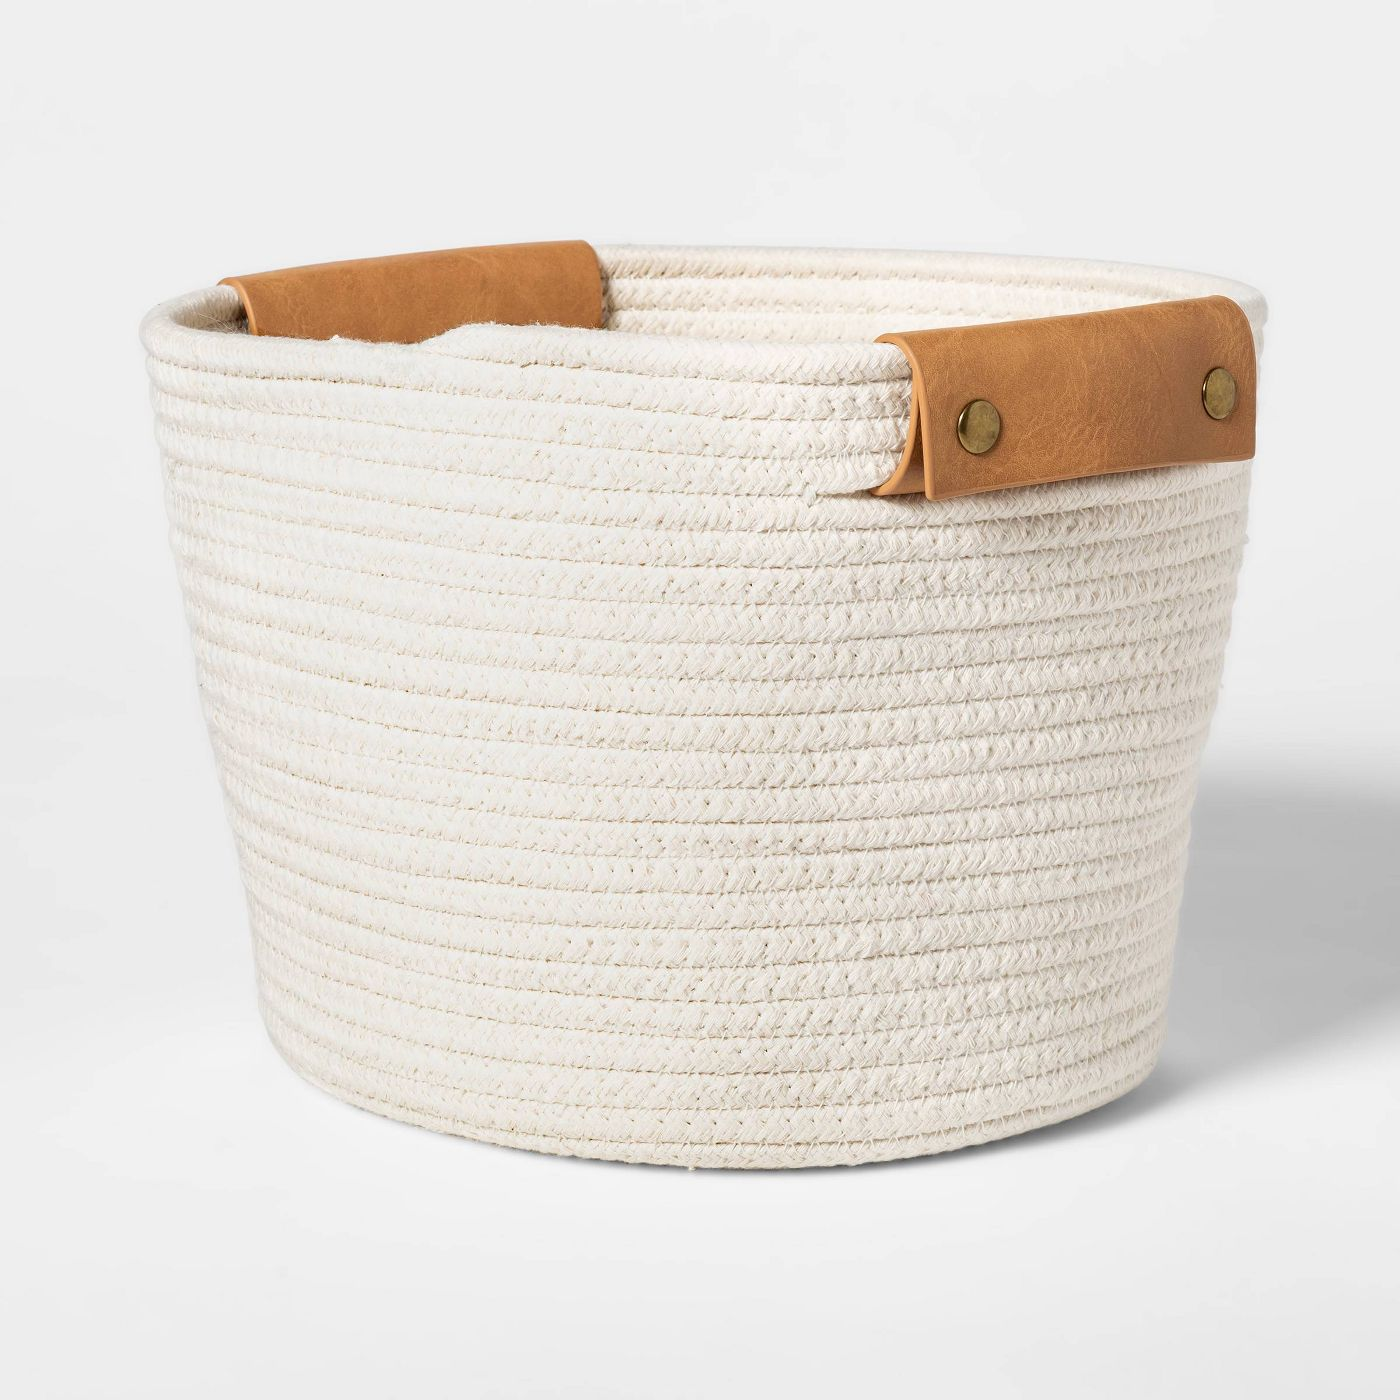 Off-white rope basket from Target